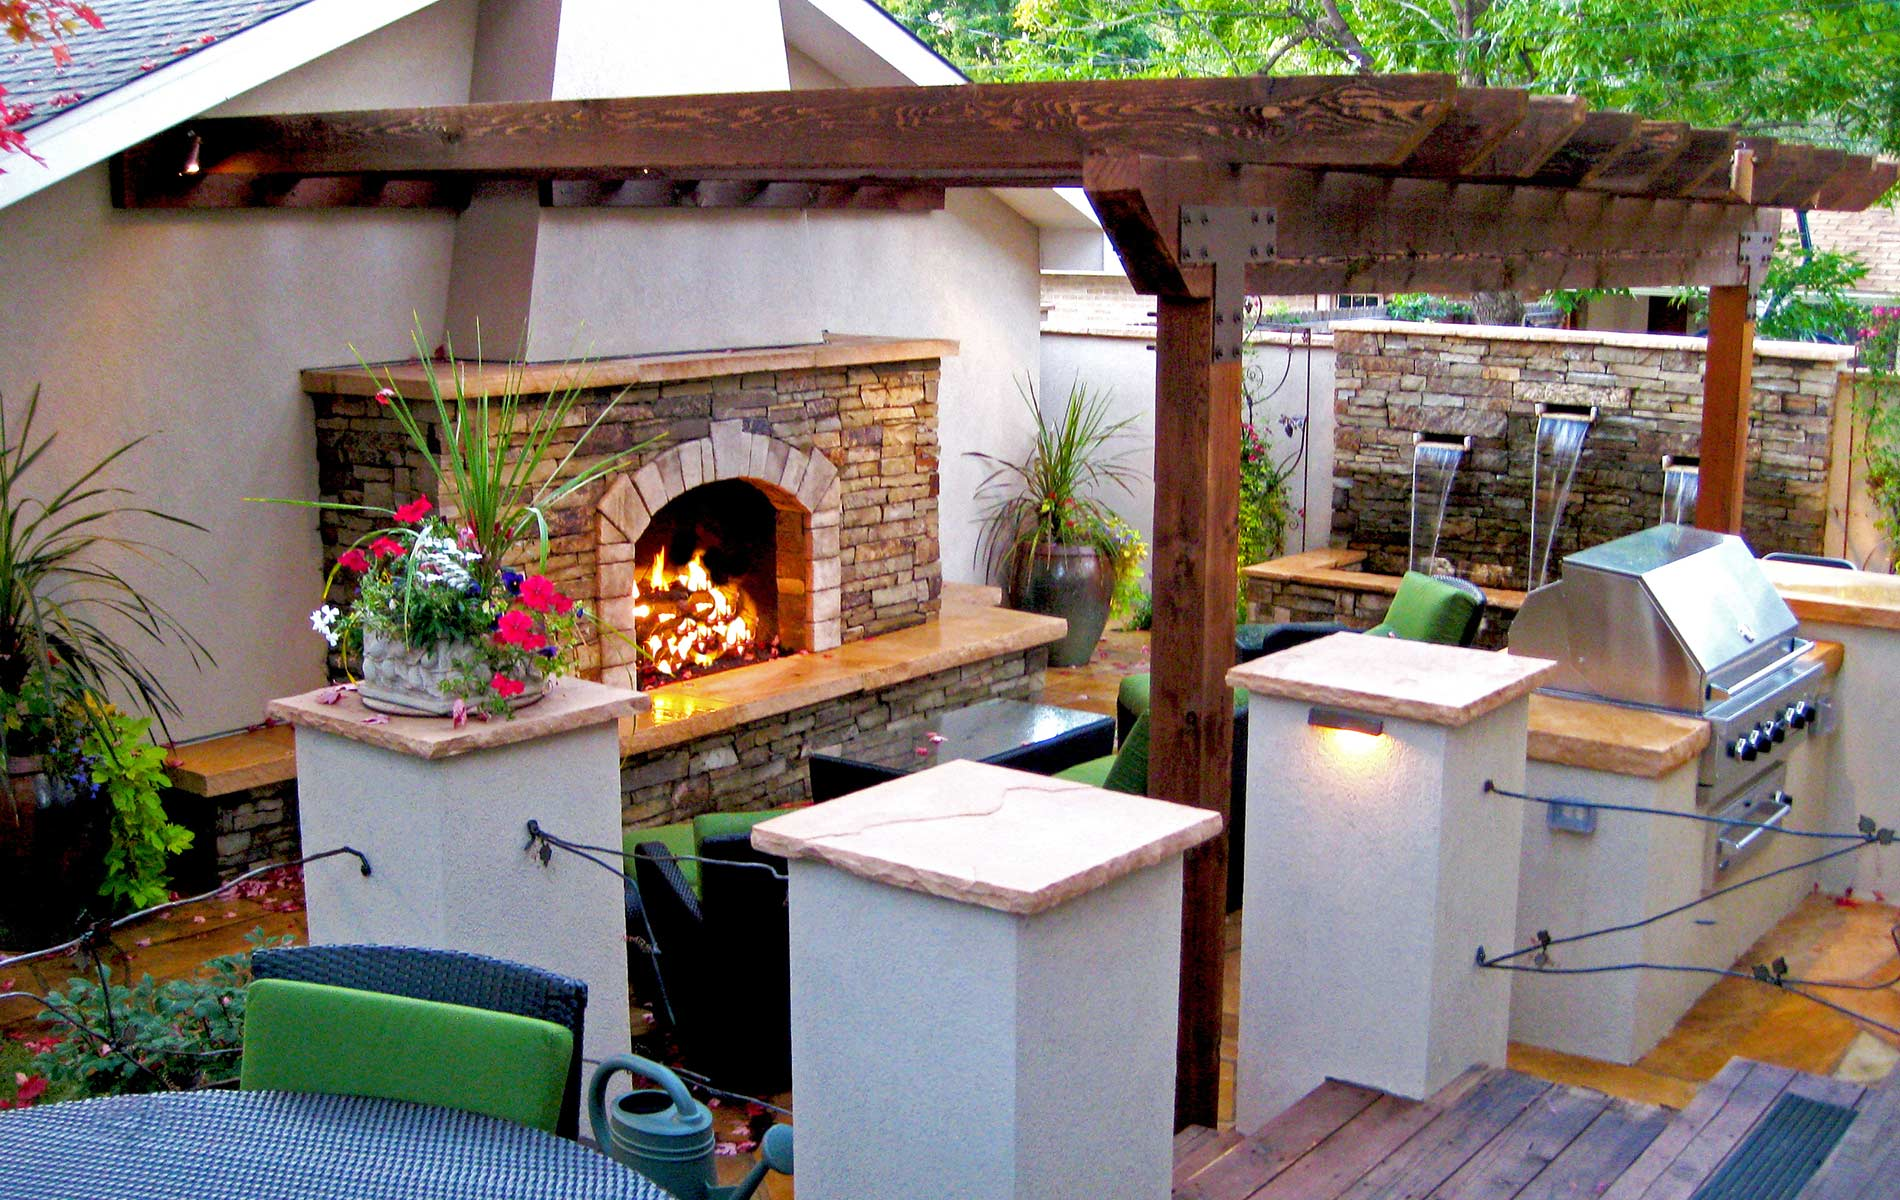 The fireplace and patio place - Mediterranean Courtyard Fireplace Mediterranean Patio Orange Mediterranean Courtyard Fireplace Mediterranean Patio Orange Wood Pergola And